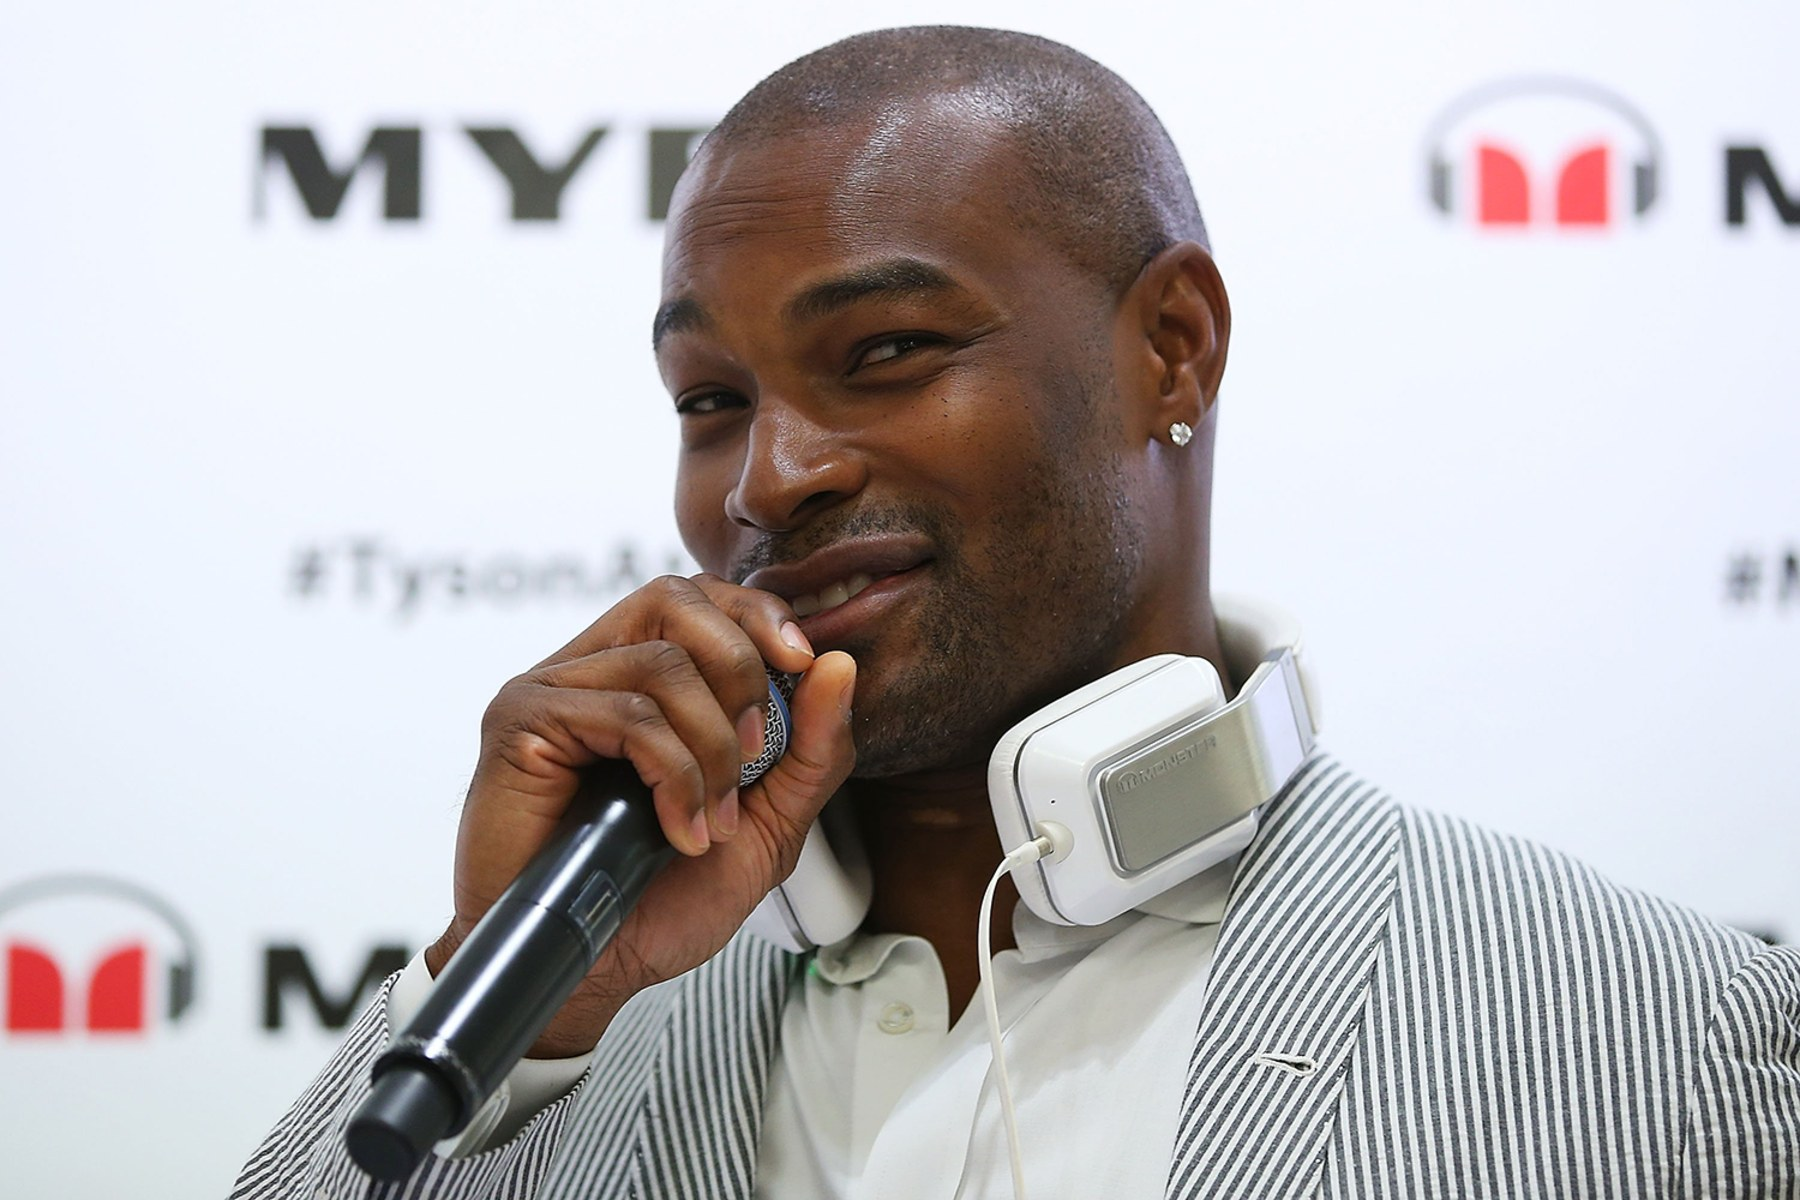 Image: Tyson Beckford Myer In-Store Appearance